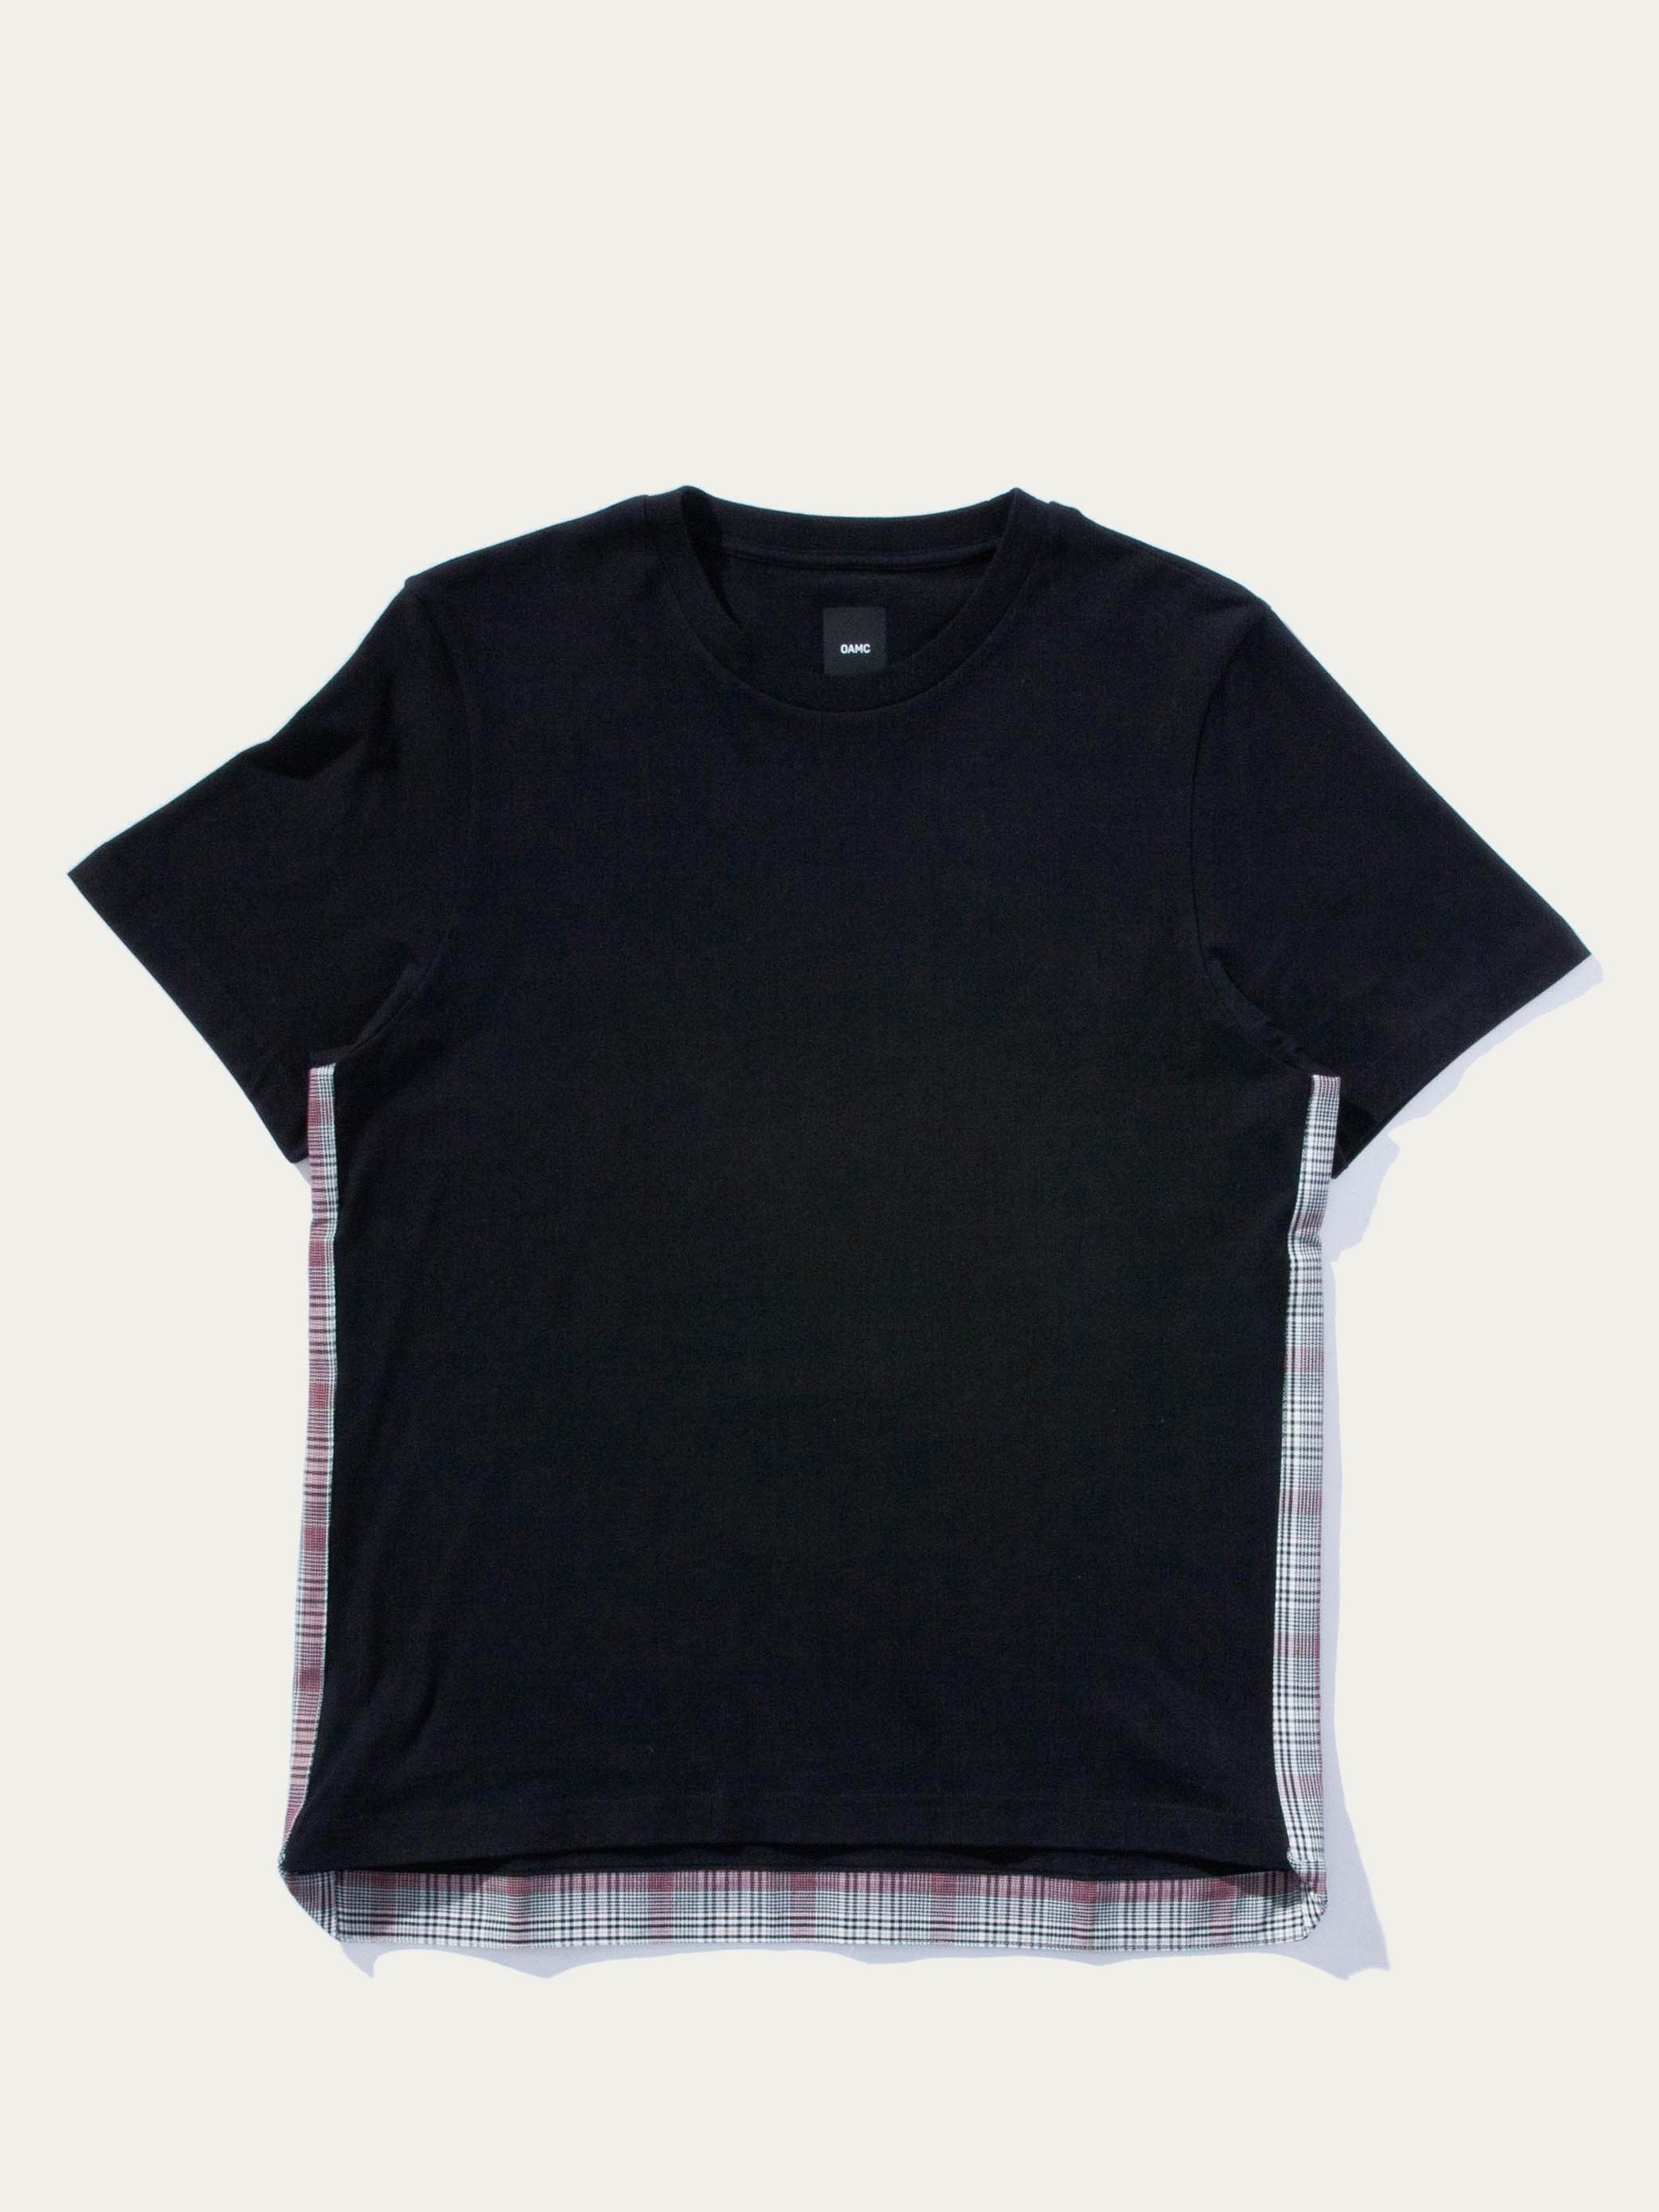 Black/Plaid Saigon S/S Top 1